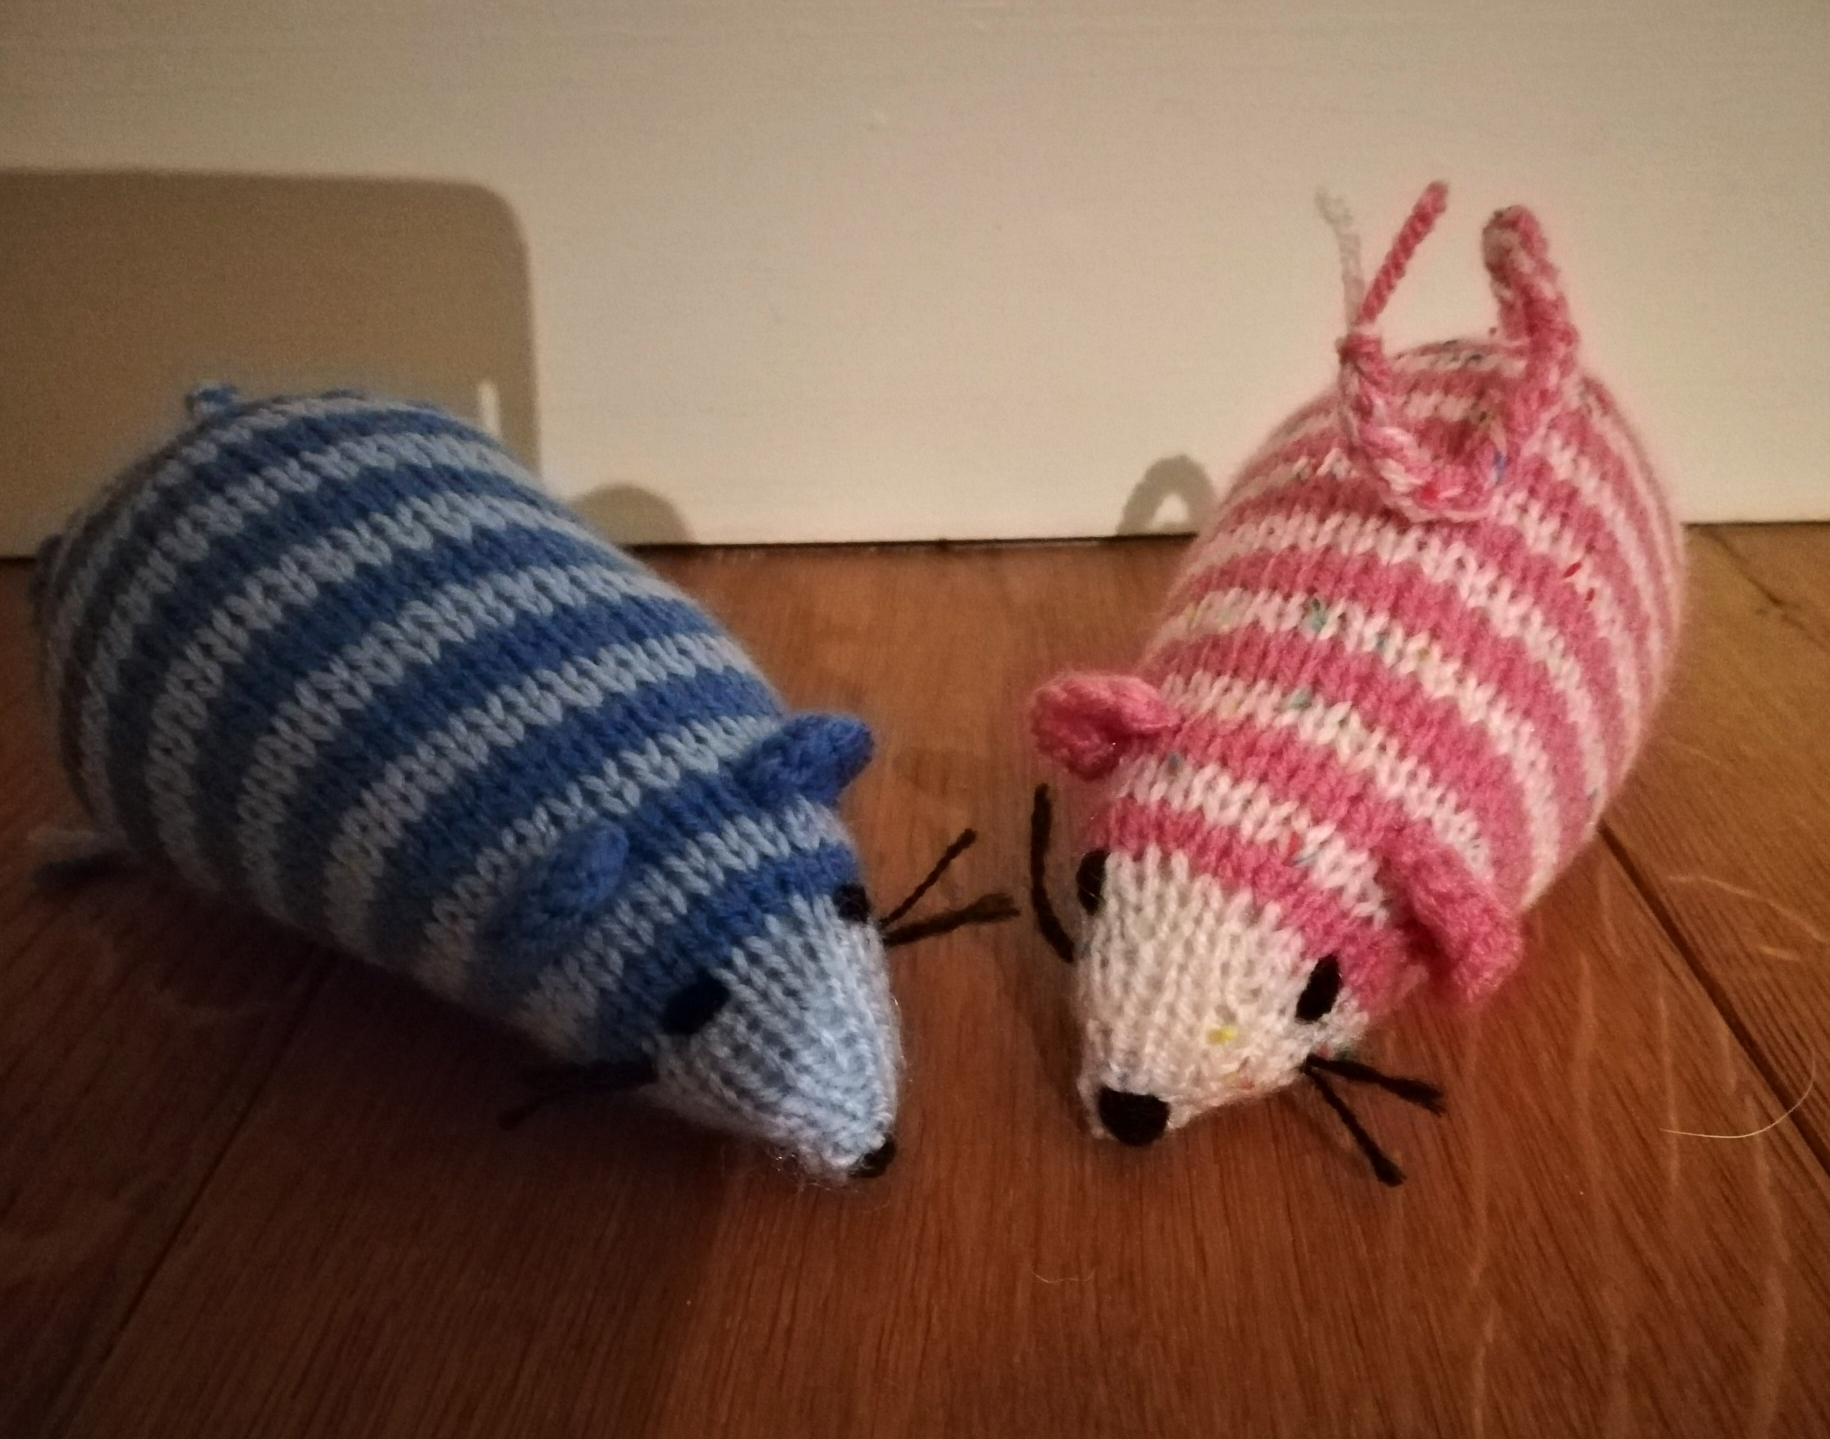 Striped mice - hours of fun for your cat!